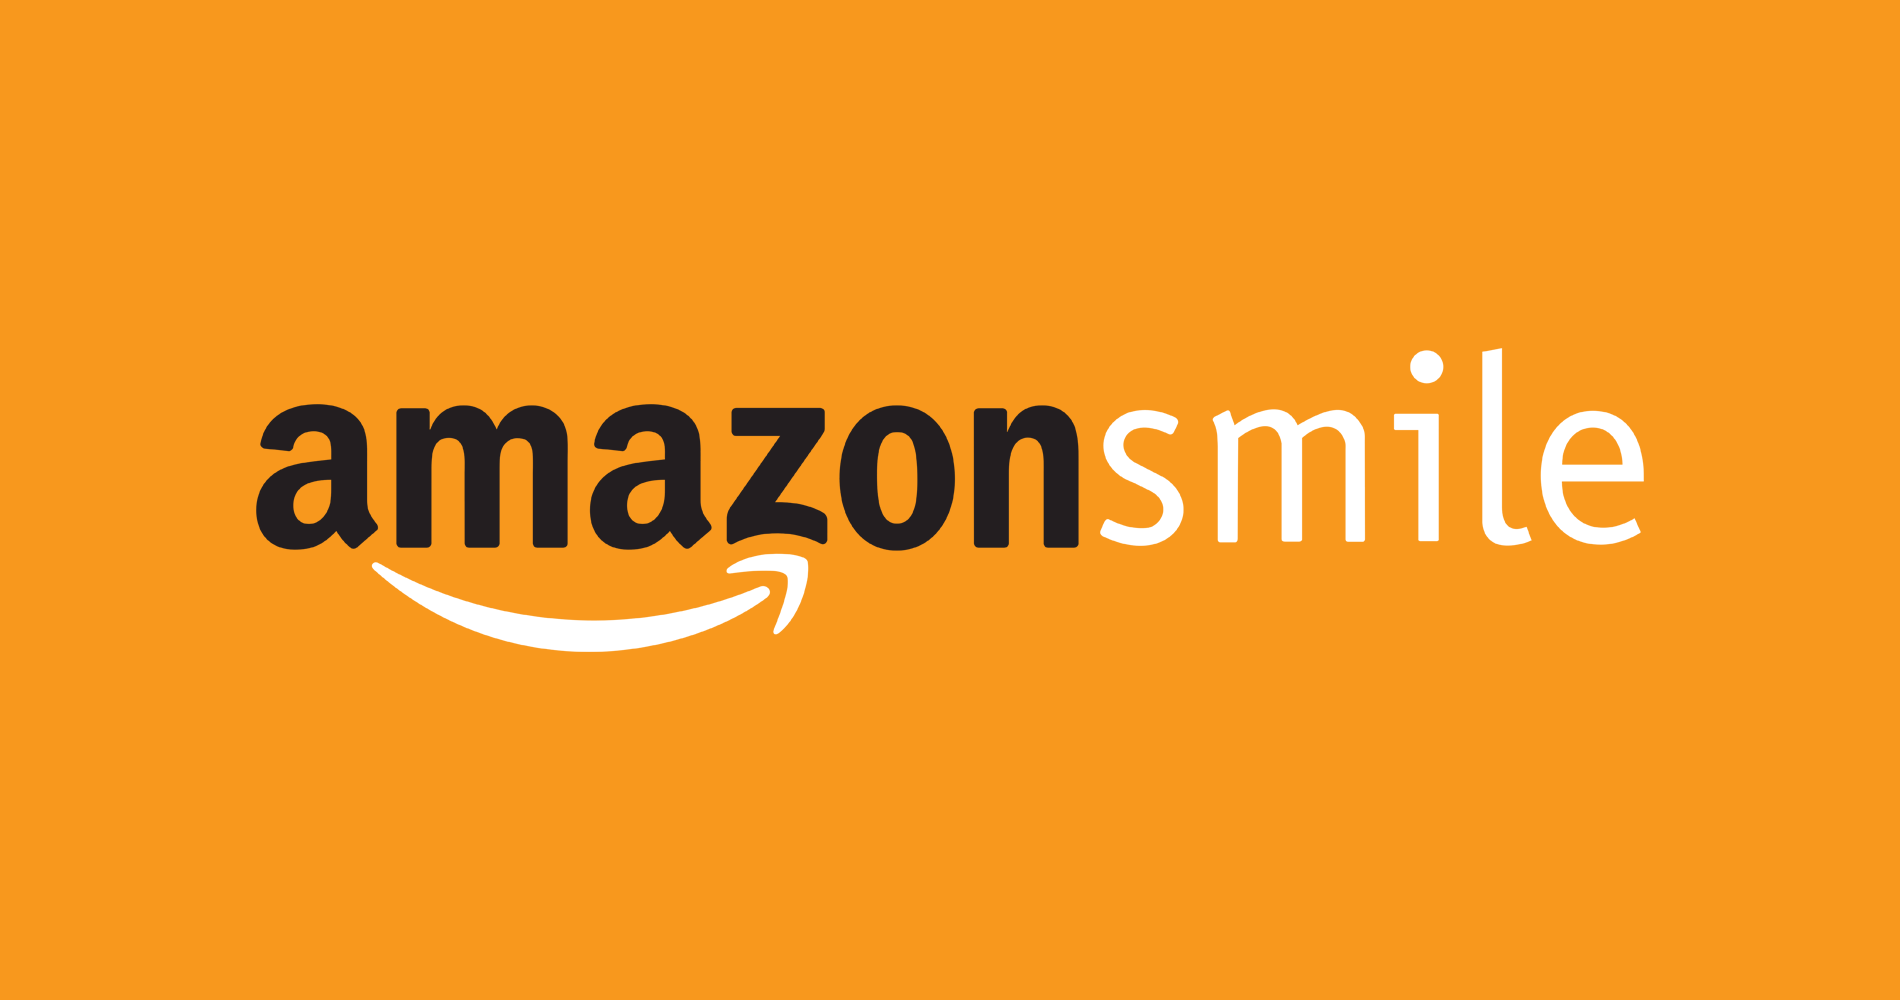 Shop Amazon, Benefit TLS